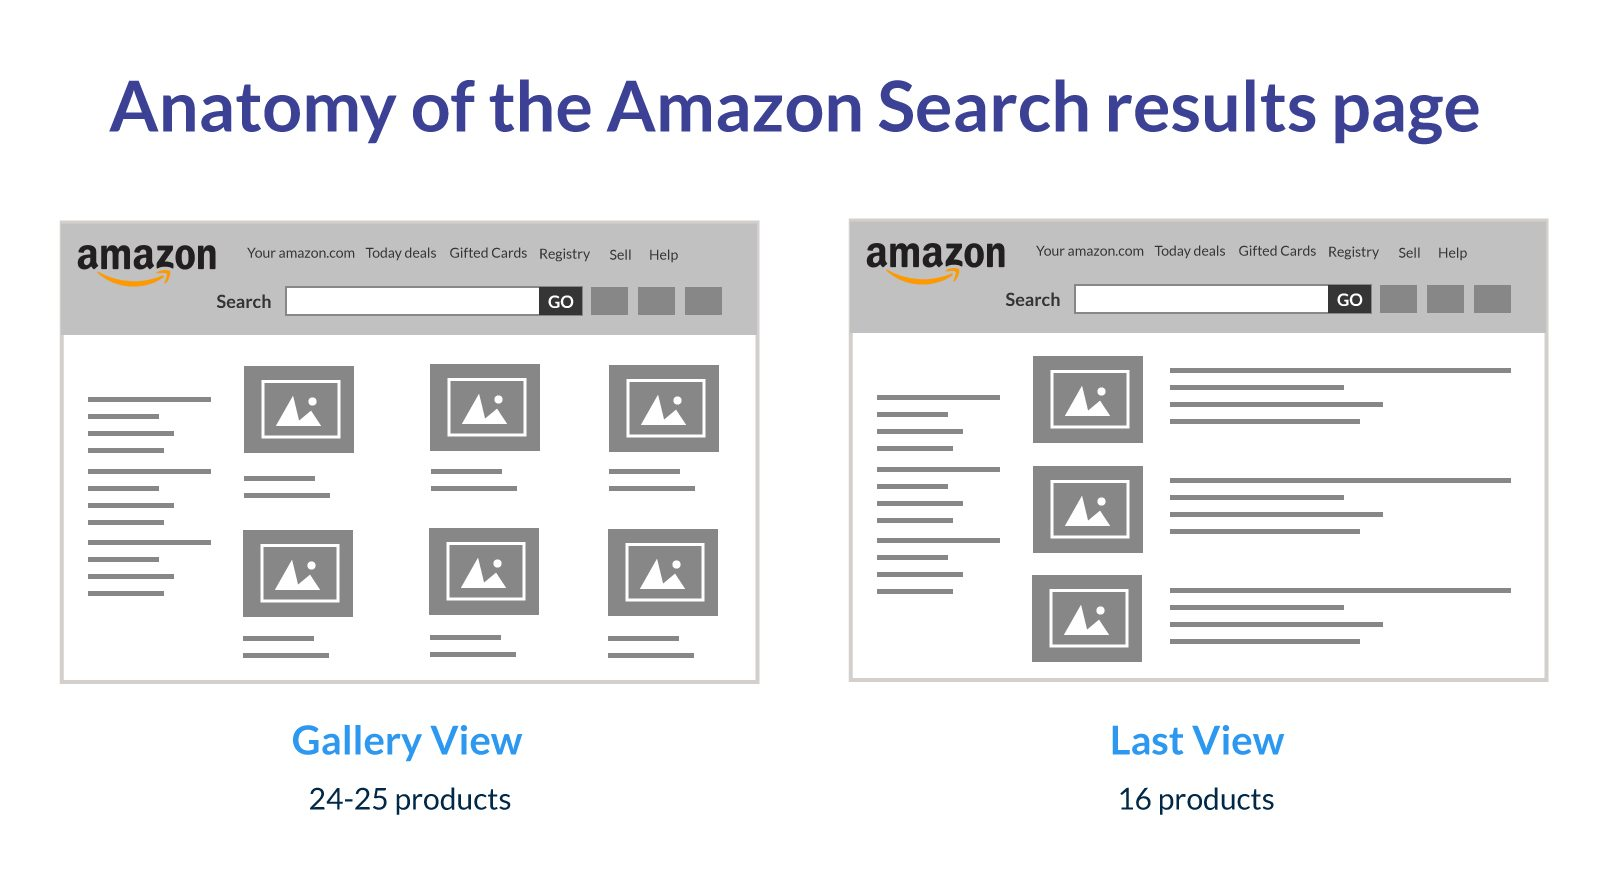 Amazon Search results